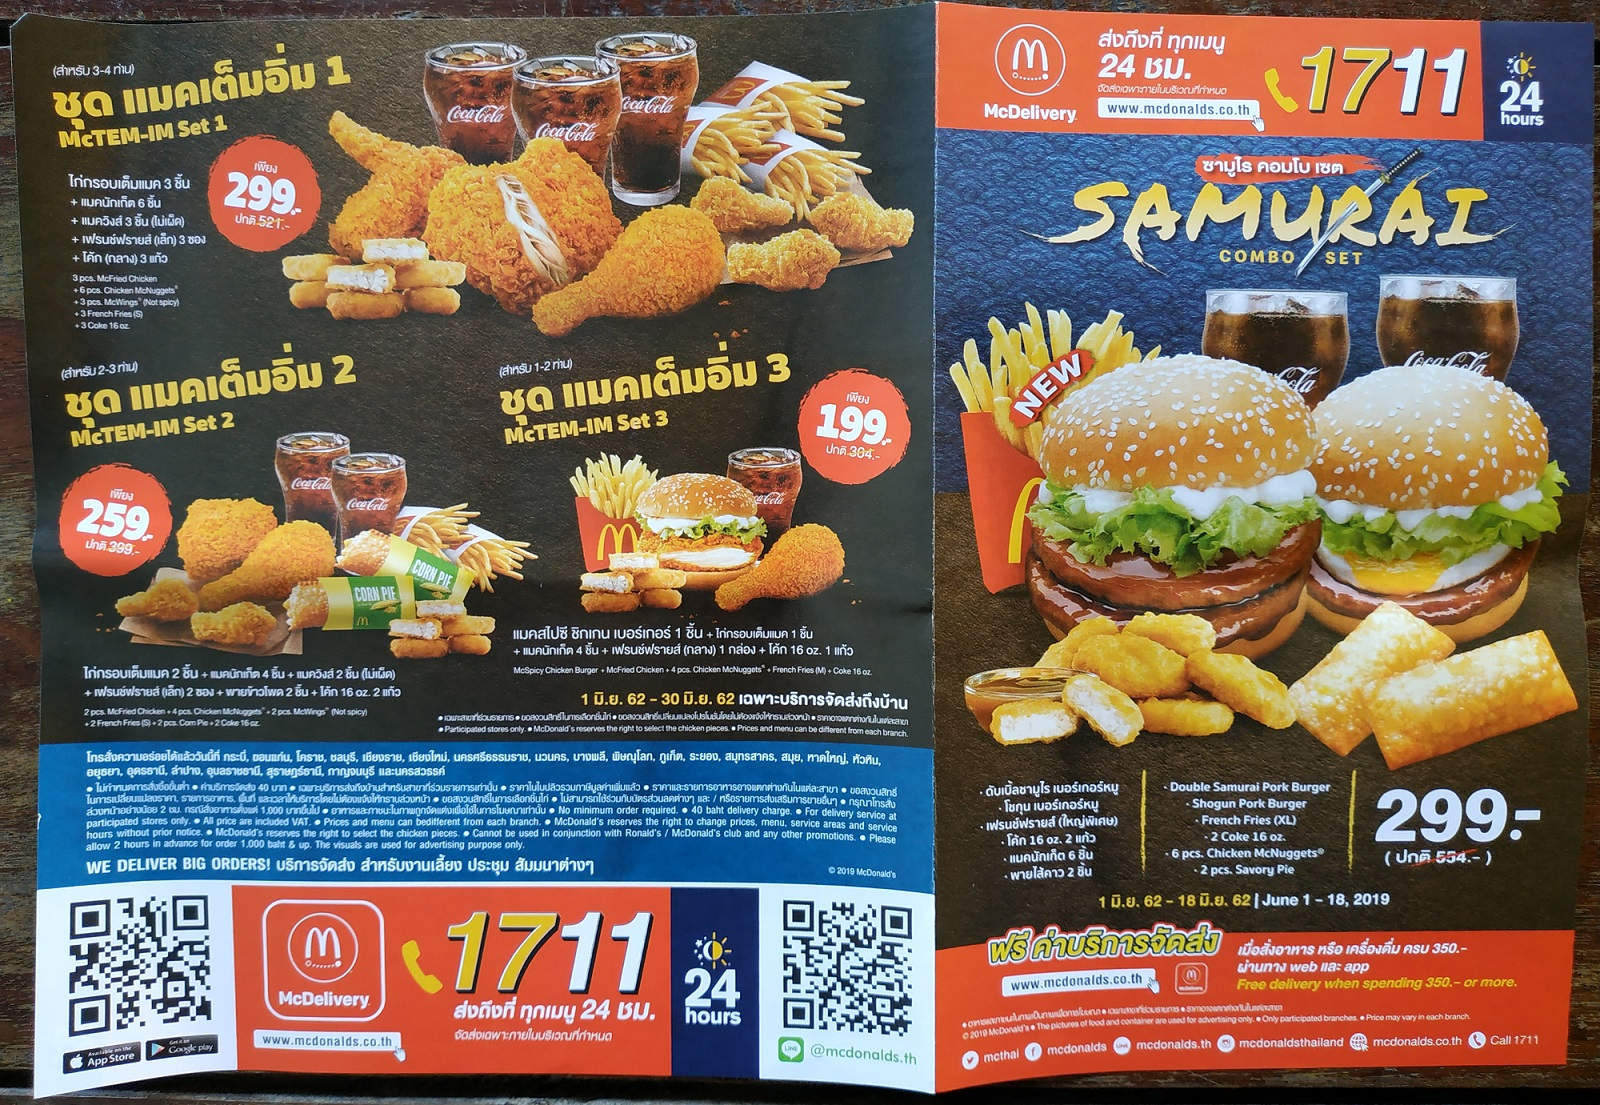 McDonalds Delivery Service menu in Thailand 1711